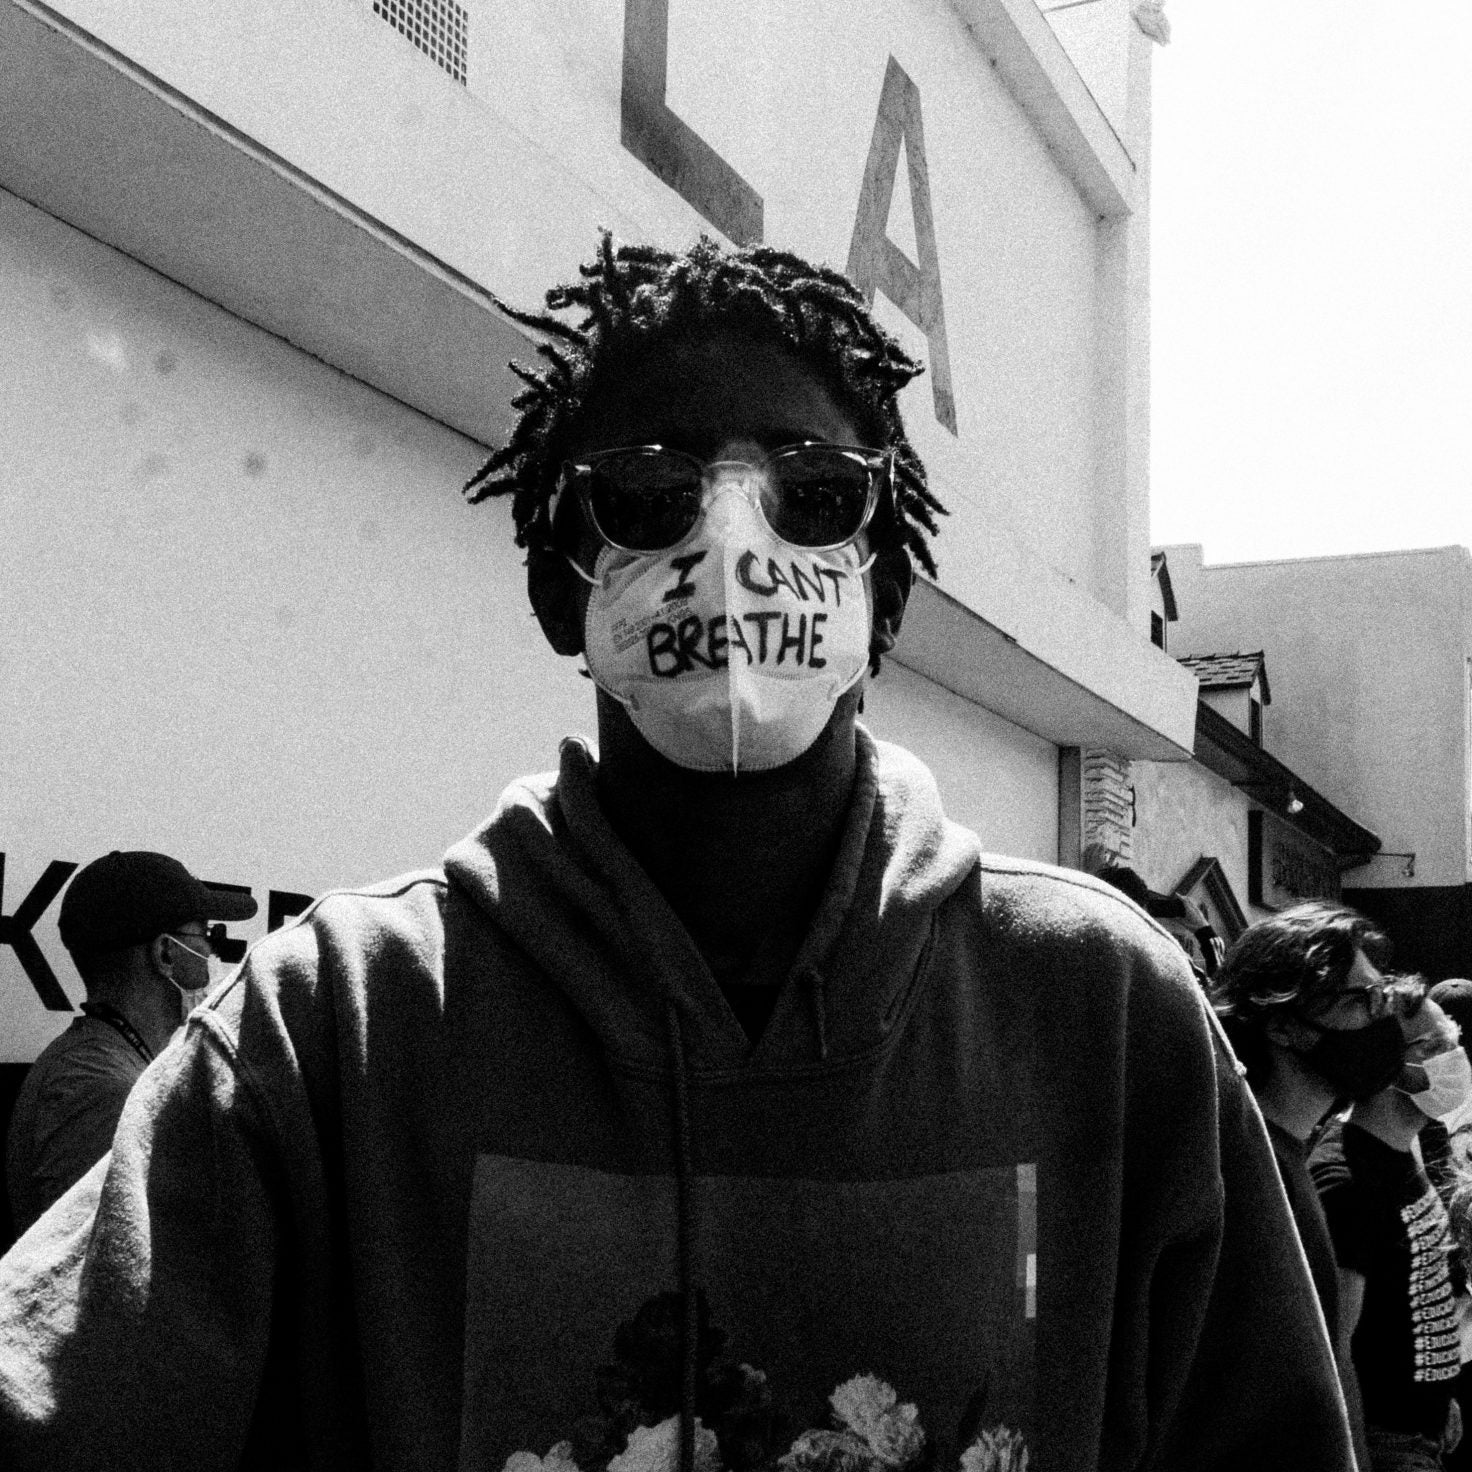 Righteous Rage: Los Angeles Photographer Turns Lens To Social Injustice